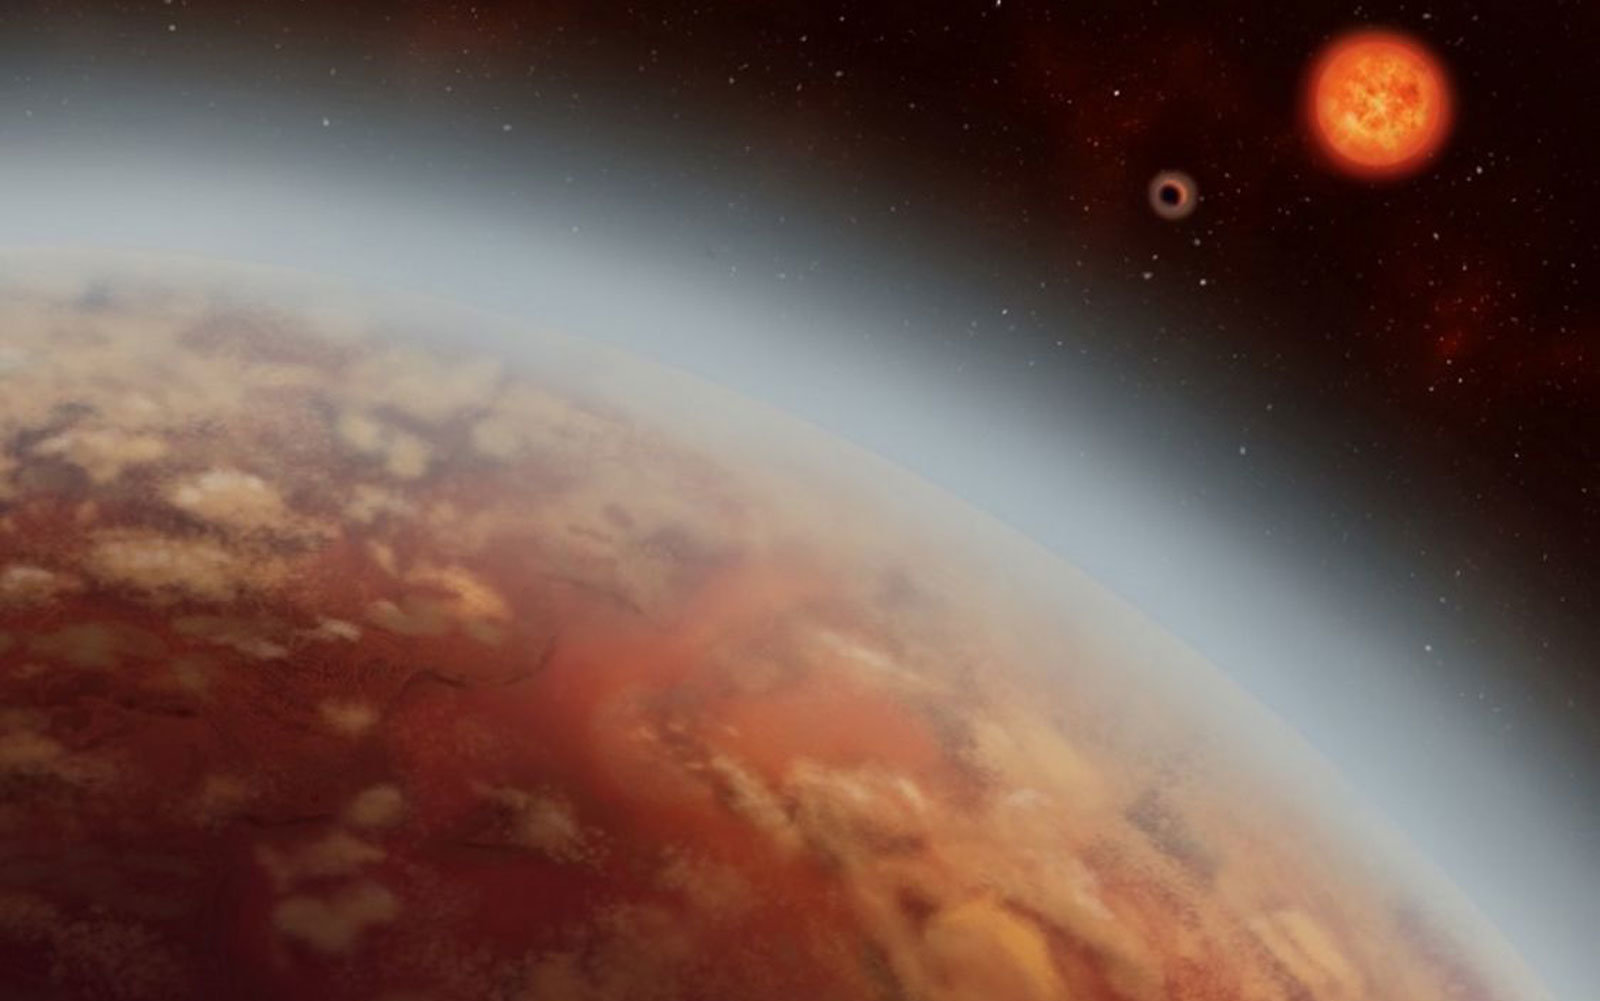 Scientists Think They Found a 'Super Earth' Outside Our Solar System